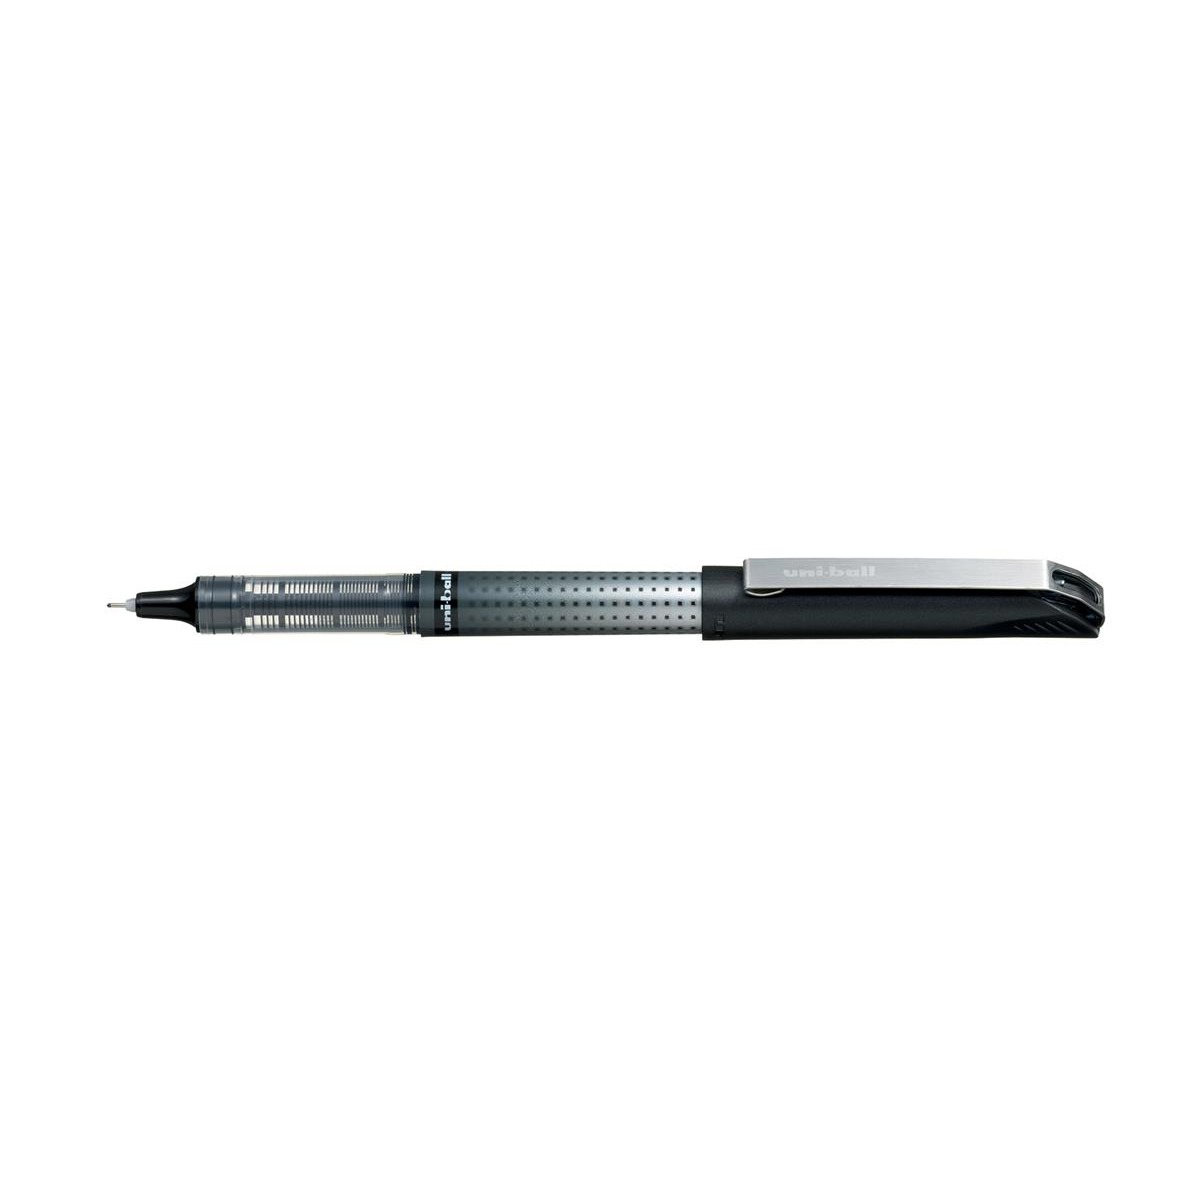 Uni-ball UB-185S Eye Needle Rollerball Pen 0.5mm Tip Black Ref 125930000 [Pack 12]